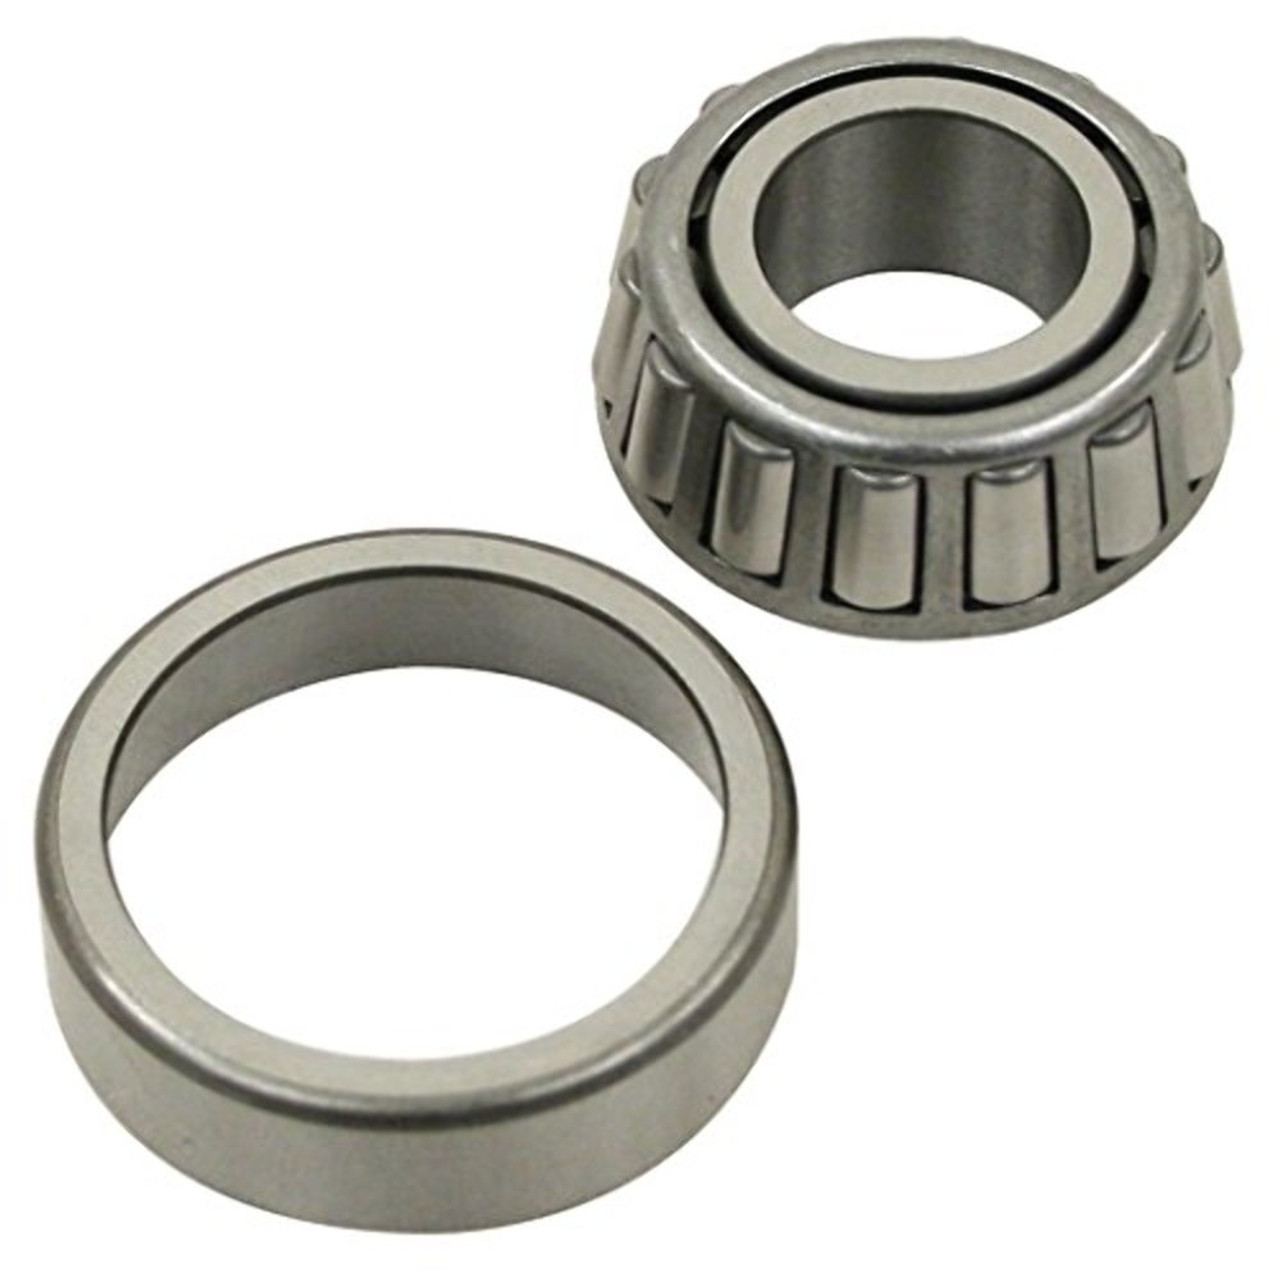 EMPI 98-4623-B - Front Outer Wheel Roller Bearing, VW TYPE 2 BUS 64-79, Each